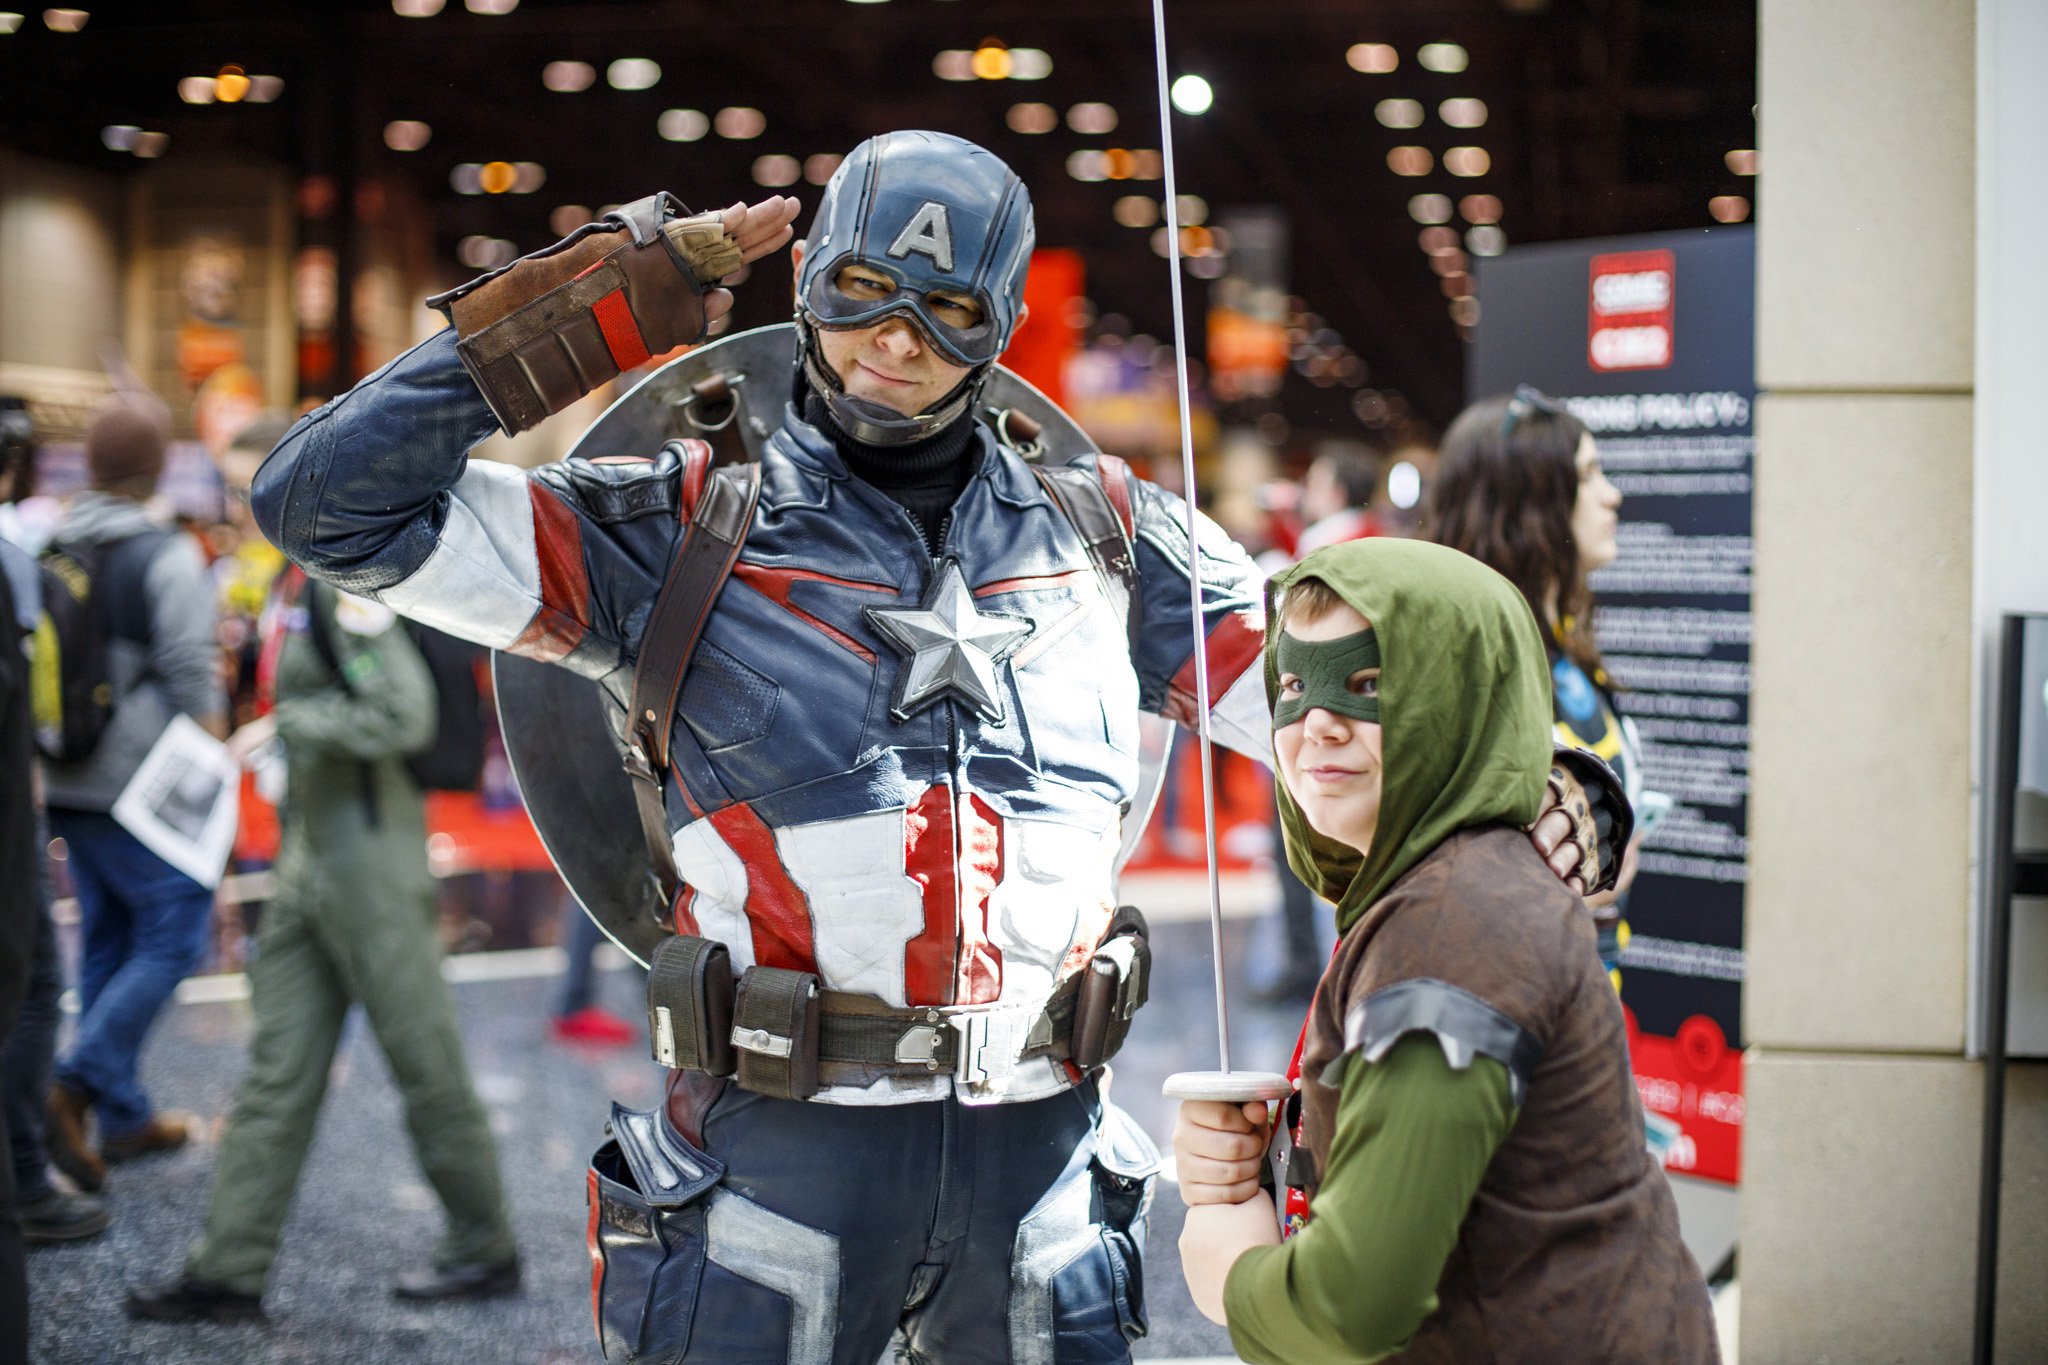 Discussing Fandom: Two cosplayers posing for a picture on the convention floor.